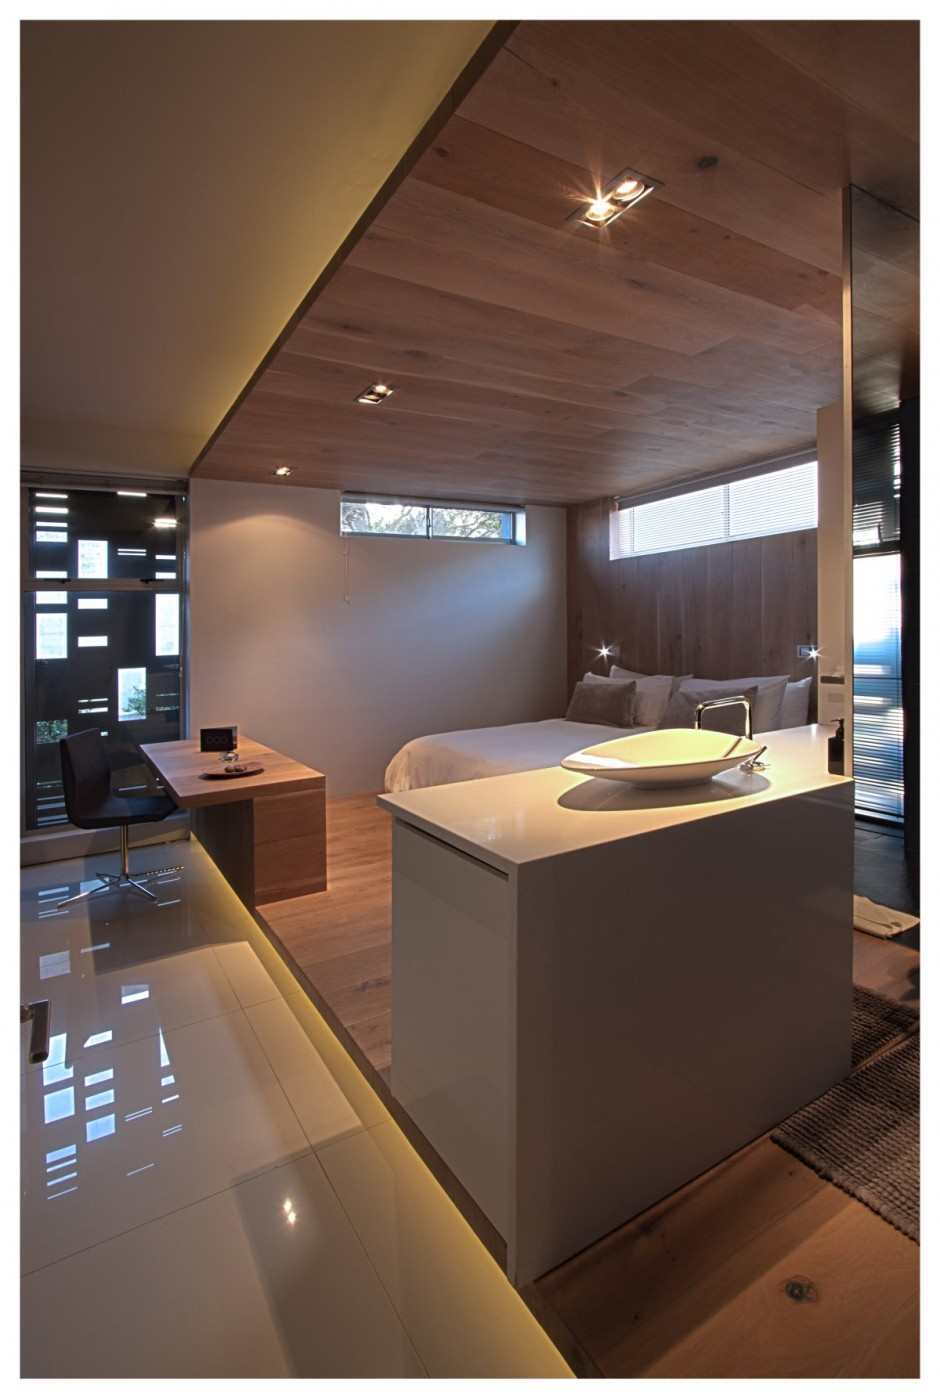 Pod Hotel By Greg Wright Architects Camps Bay South Africa